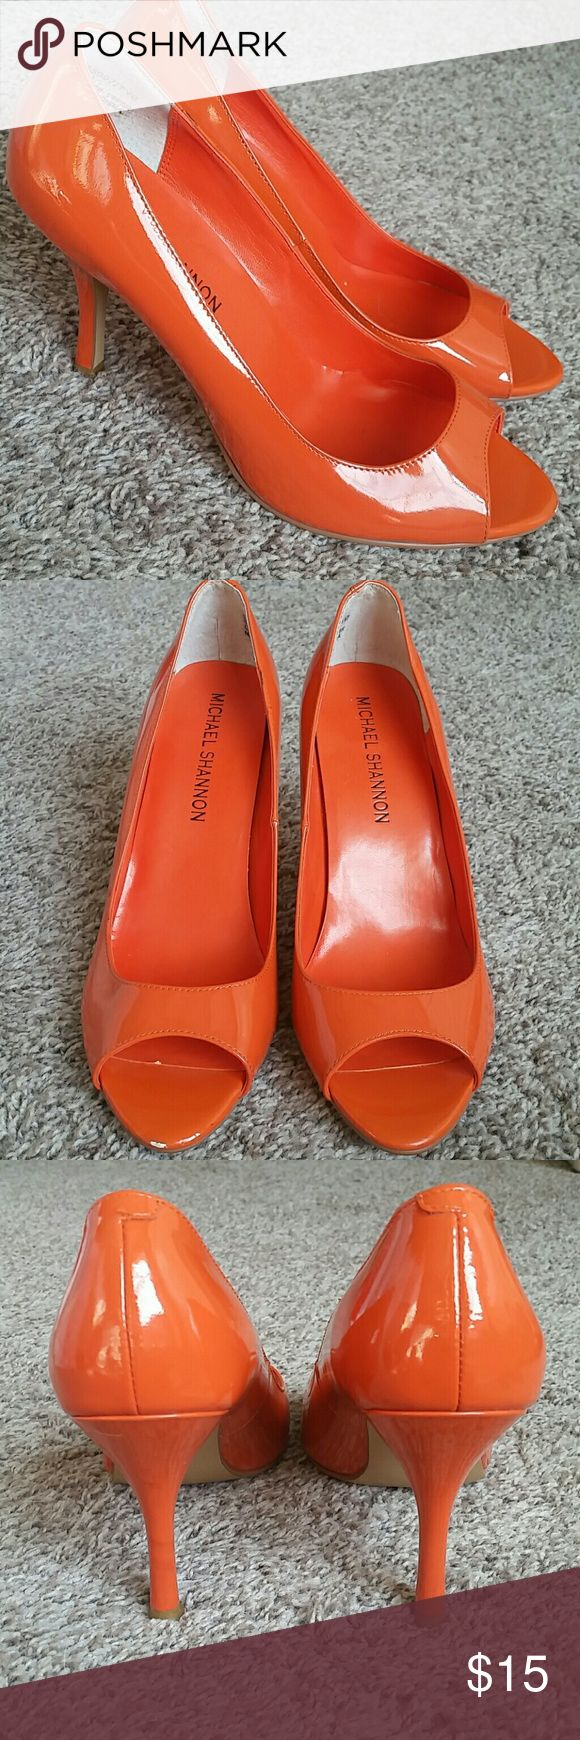 """Michael Shannon Orange Pumps Perfect for Spring and Summer! Michael Shannon Orange peep toe pumps.  Minimal scuffing on shoes. In great condition. Women's size 7.5 Heel height: 3.75"""" Michael Shannon Shoes Heels"""